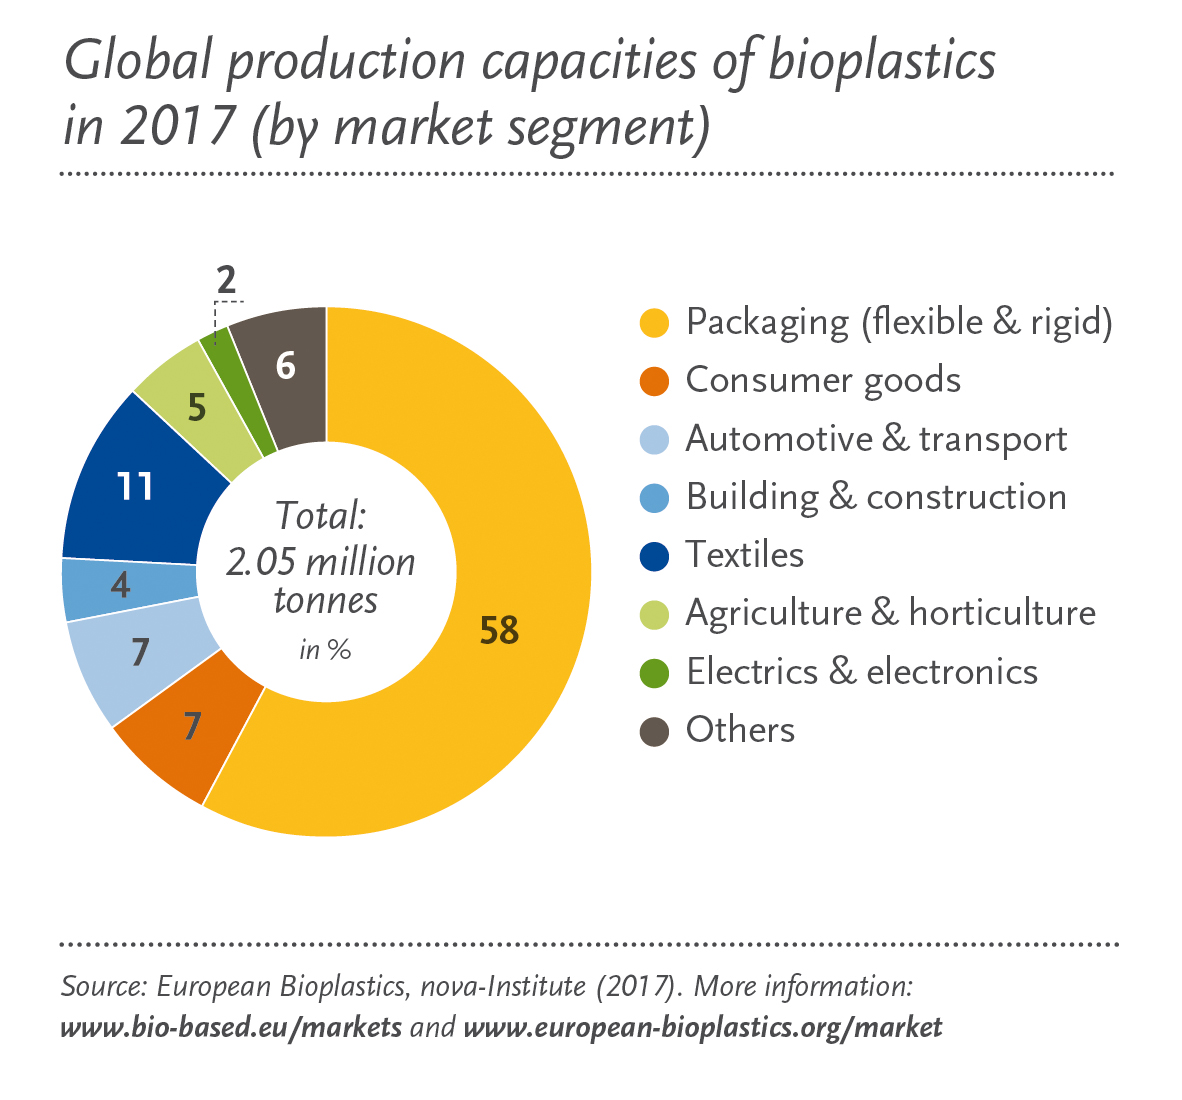 http://www.european-bioplastics.org/wp-content/uploads/2017/11/Global_Production_Capacities_2017_by_market_en.jpg